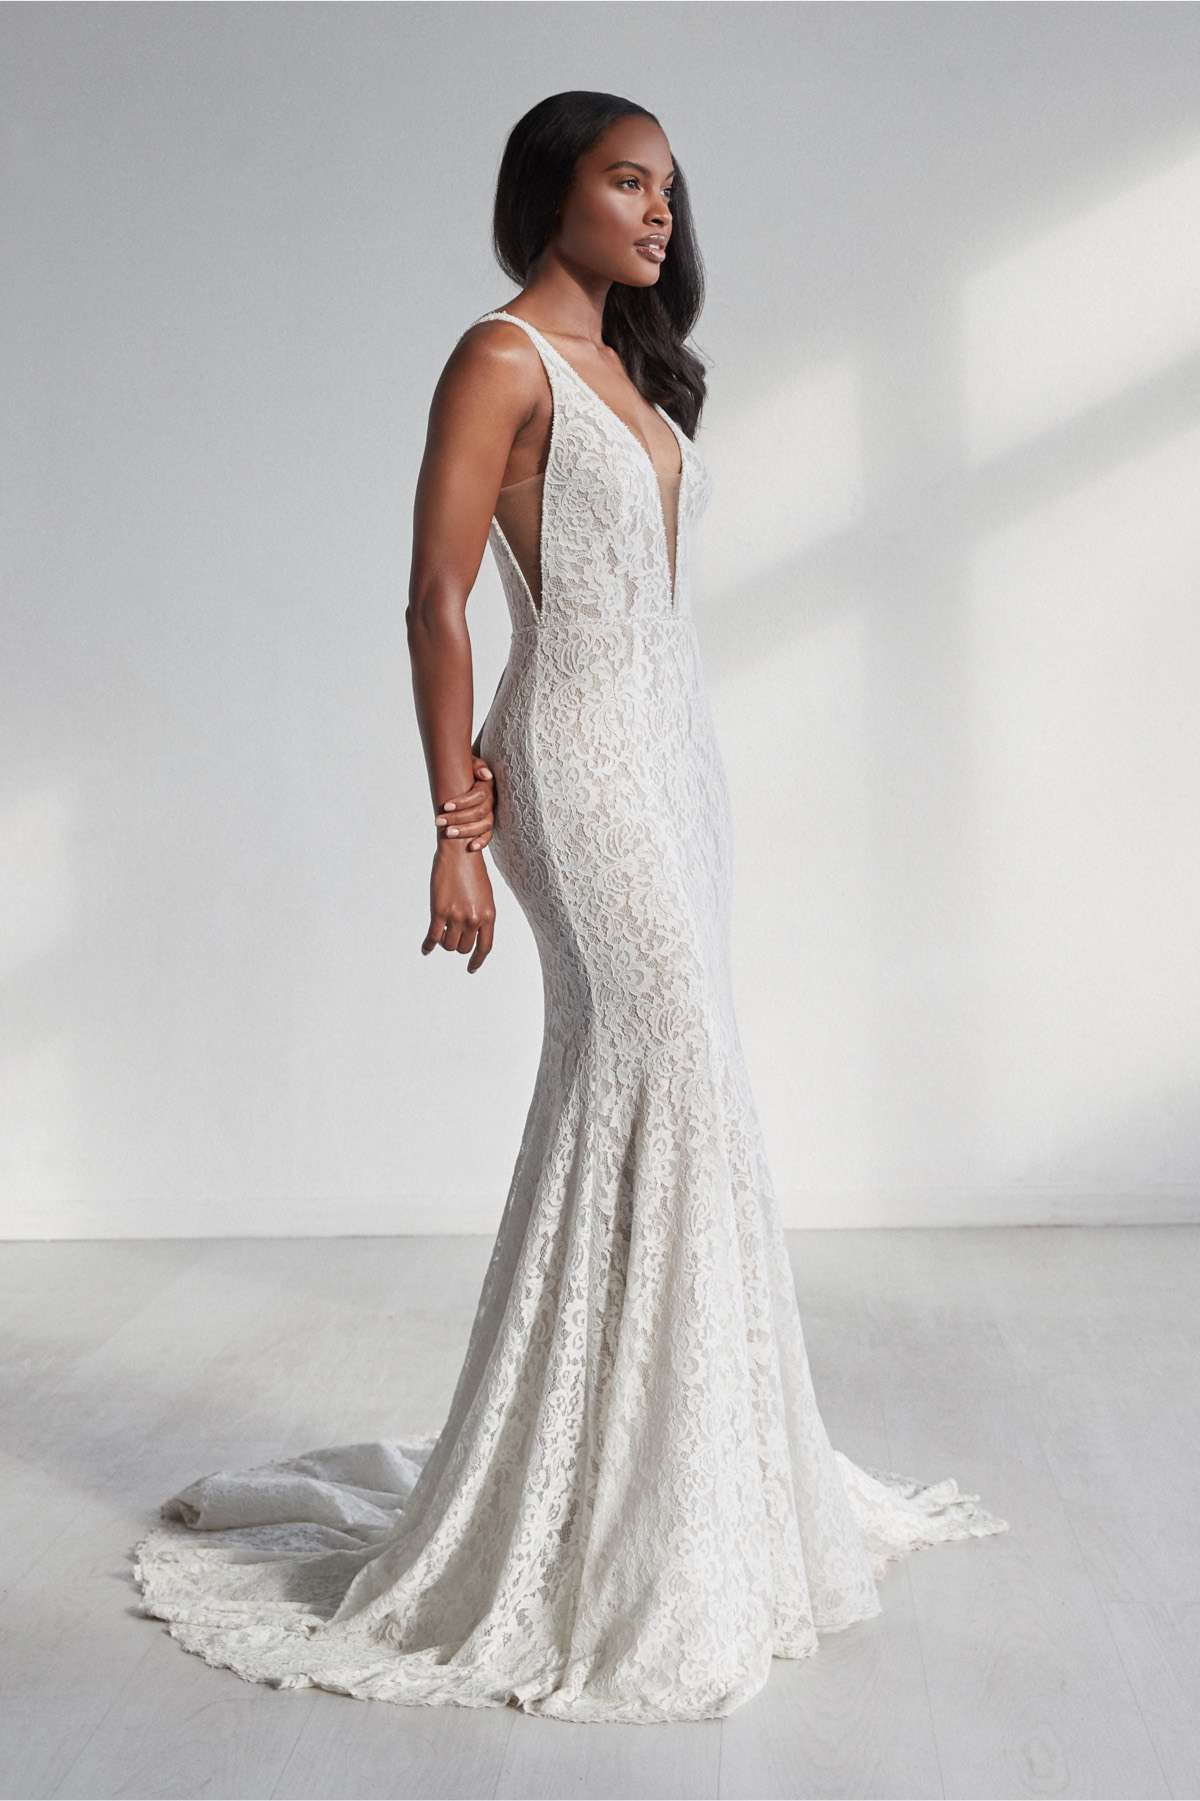 Model in sleeveless allover lace fit and flare gown with a plunging illusion neckline